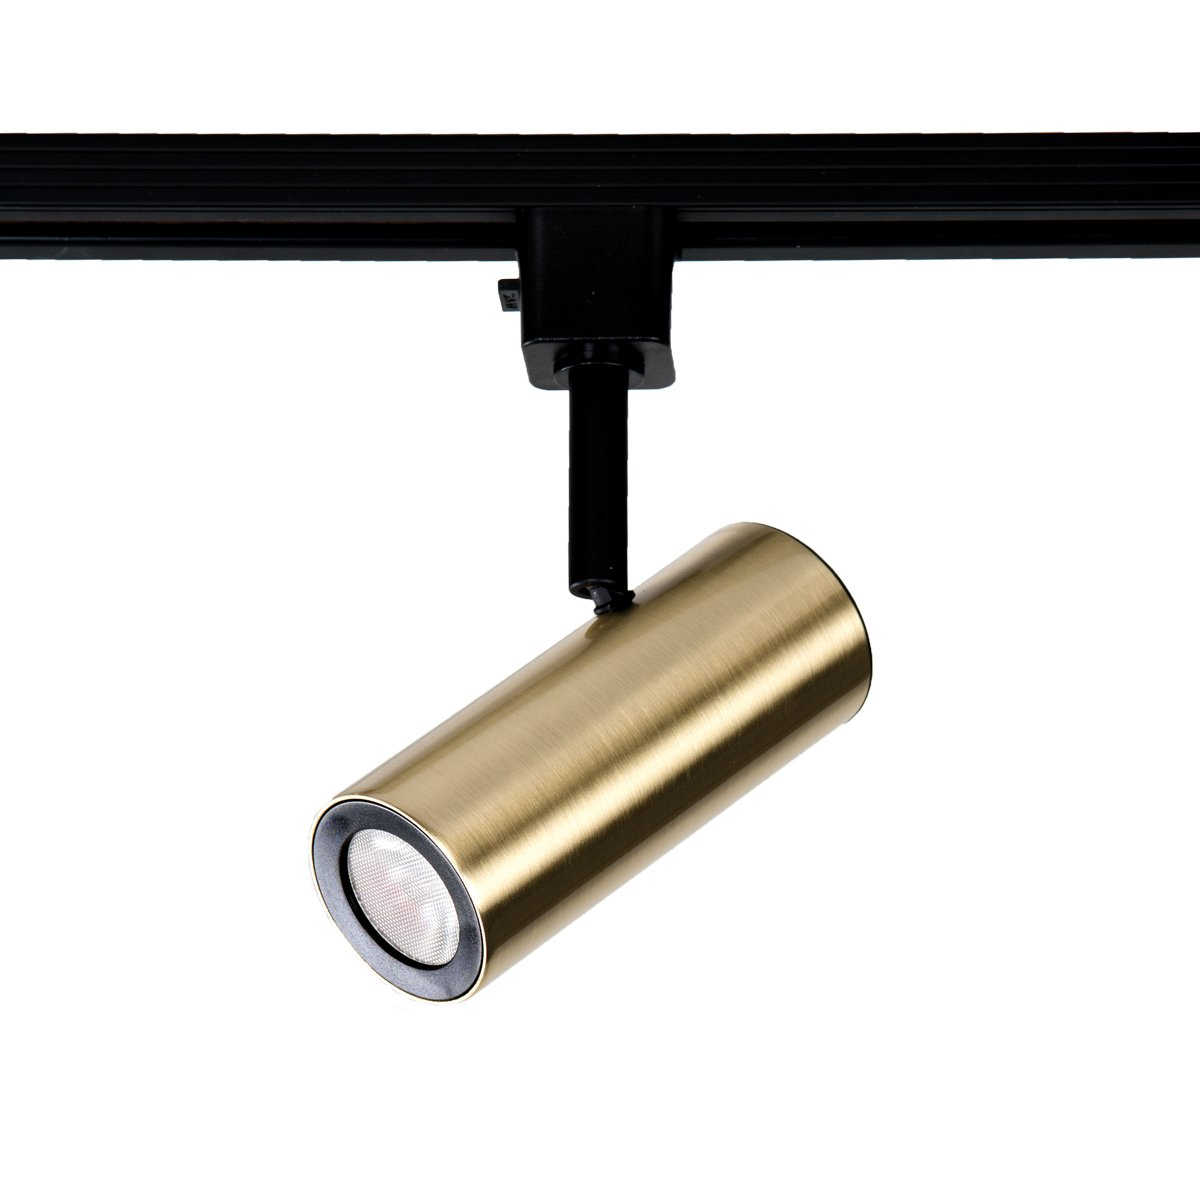 WAC Lighting H-2010-930-BR LED2010 Silo X10 Head in Brushed Brass for H Track, 10 Watts,